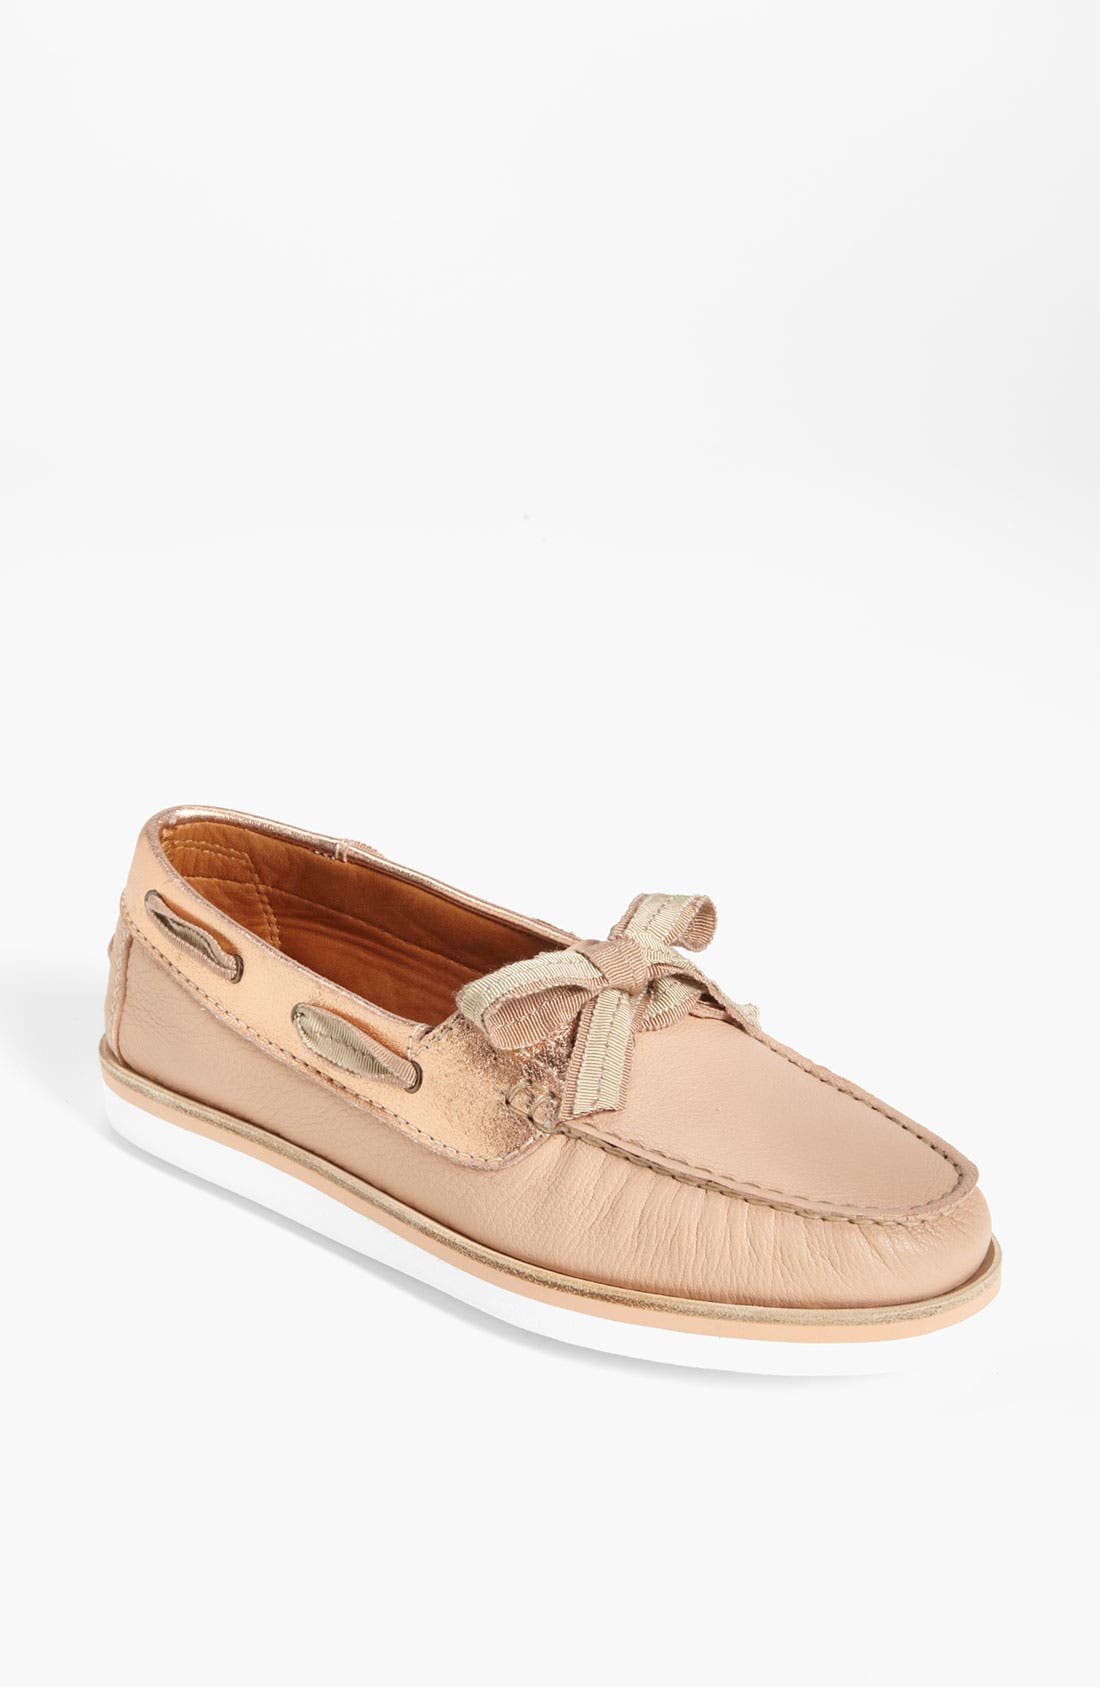 Main Image - Lanvin Loafer